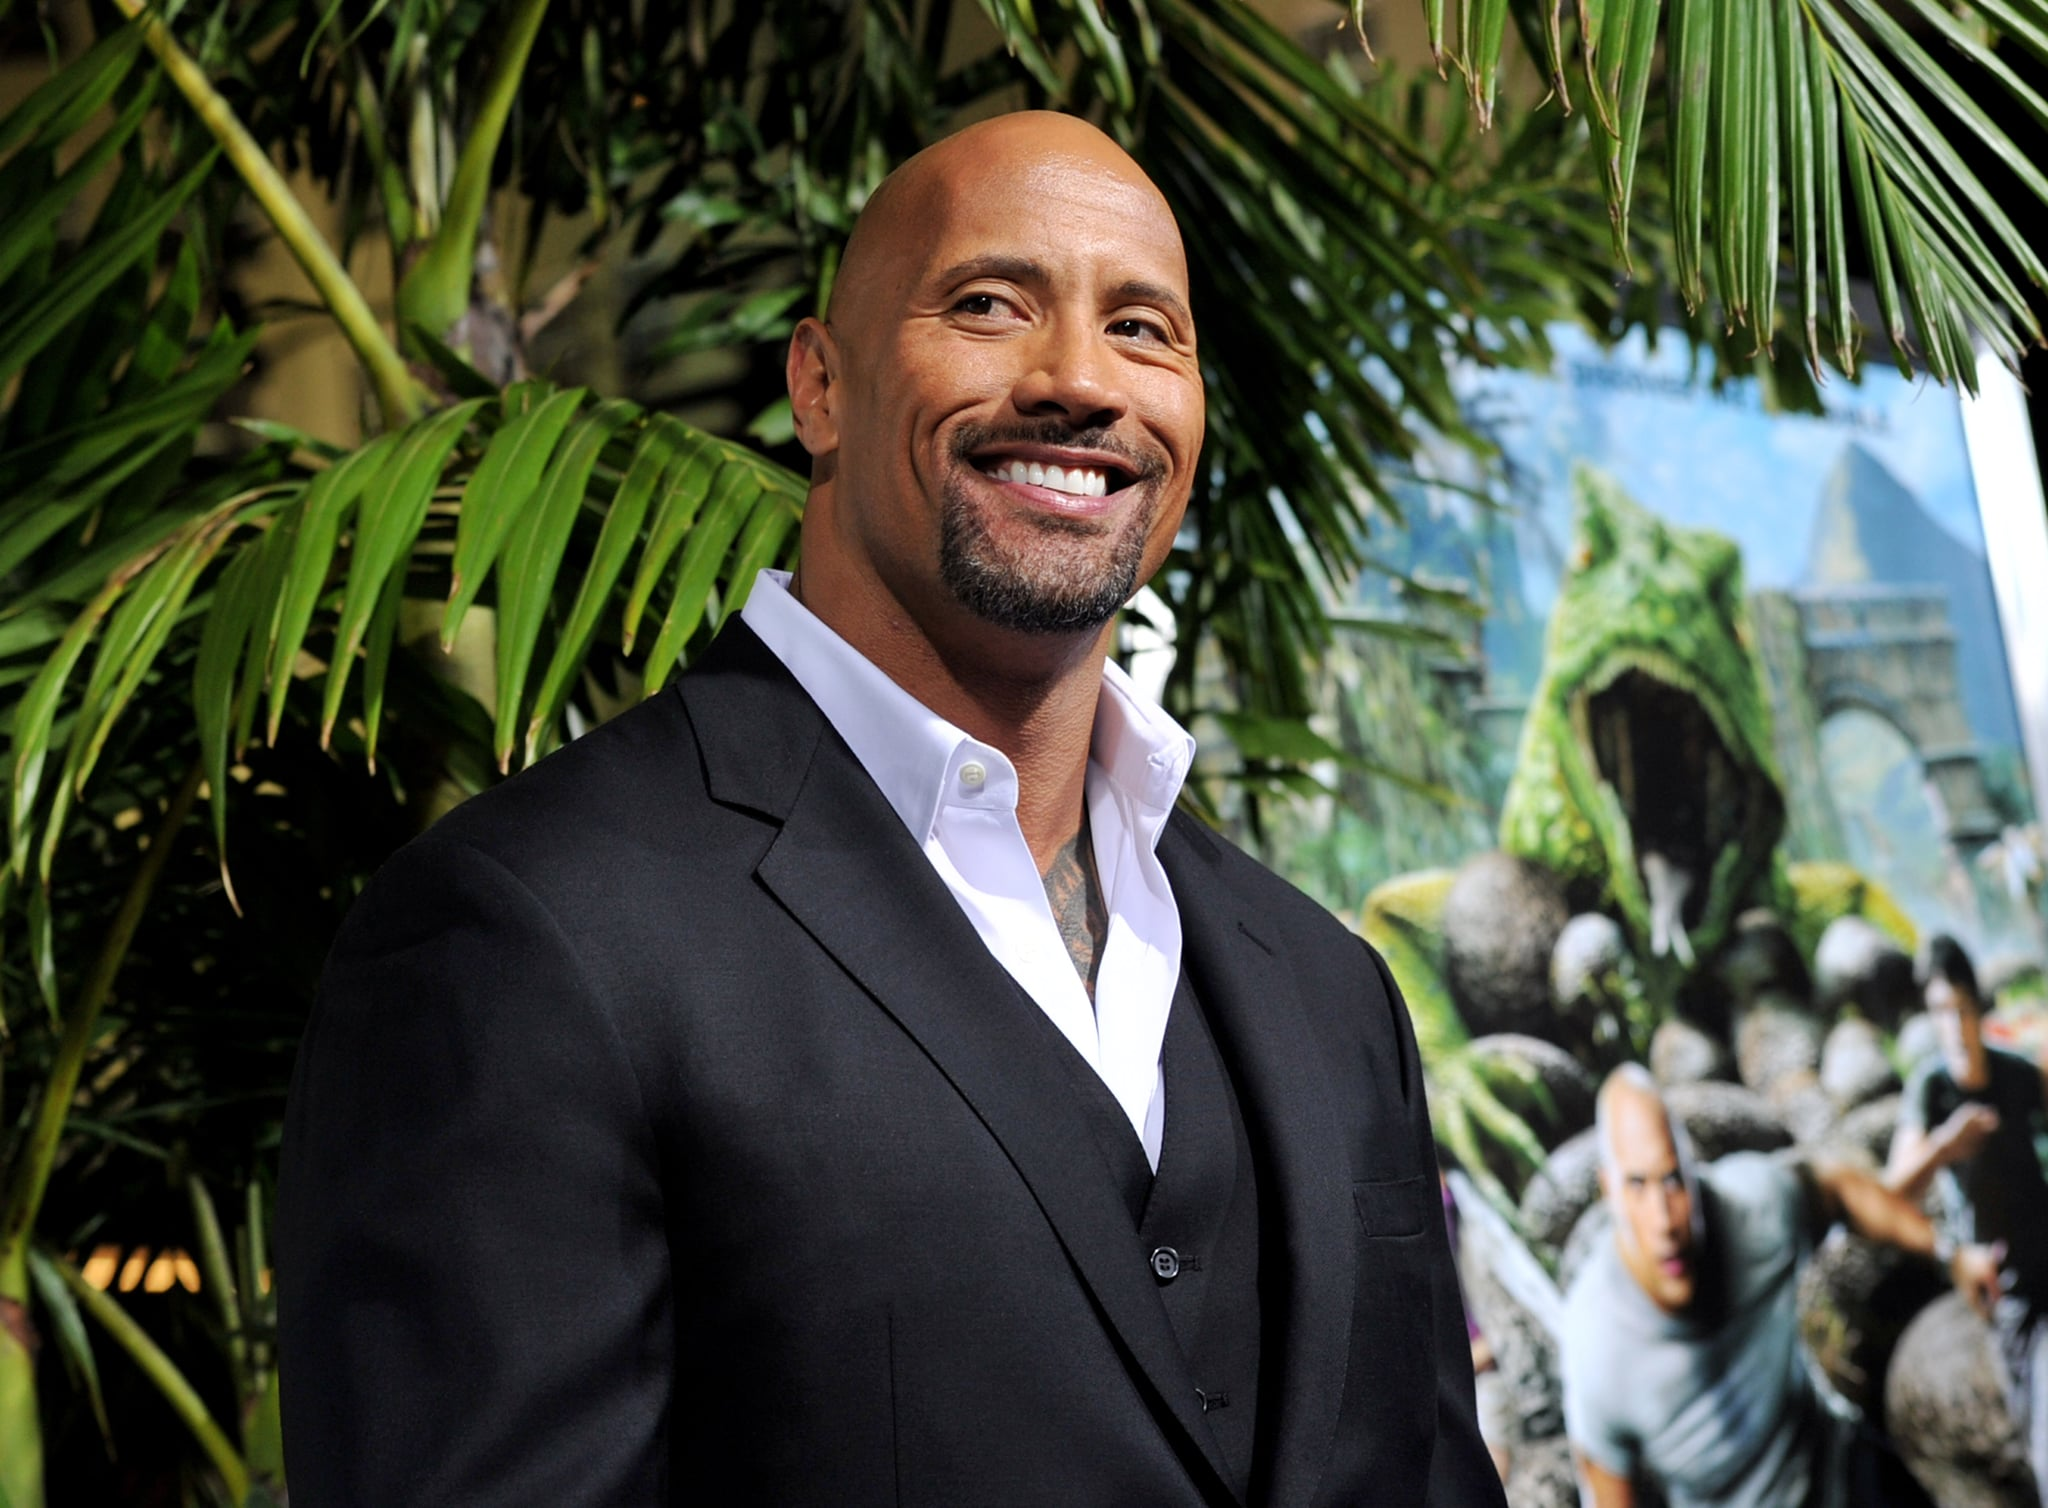 LOS ANGELES, CA - FEBRUARY 02:  Actor Dwayne Johnson arrives at the premiere of Warner Bros. Pictures'